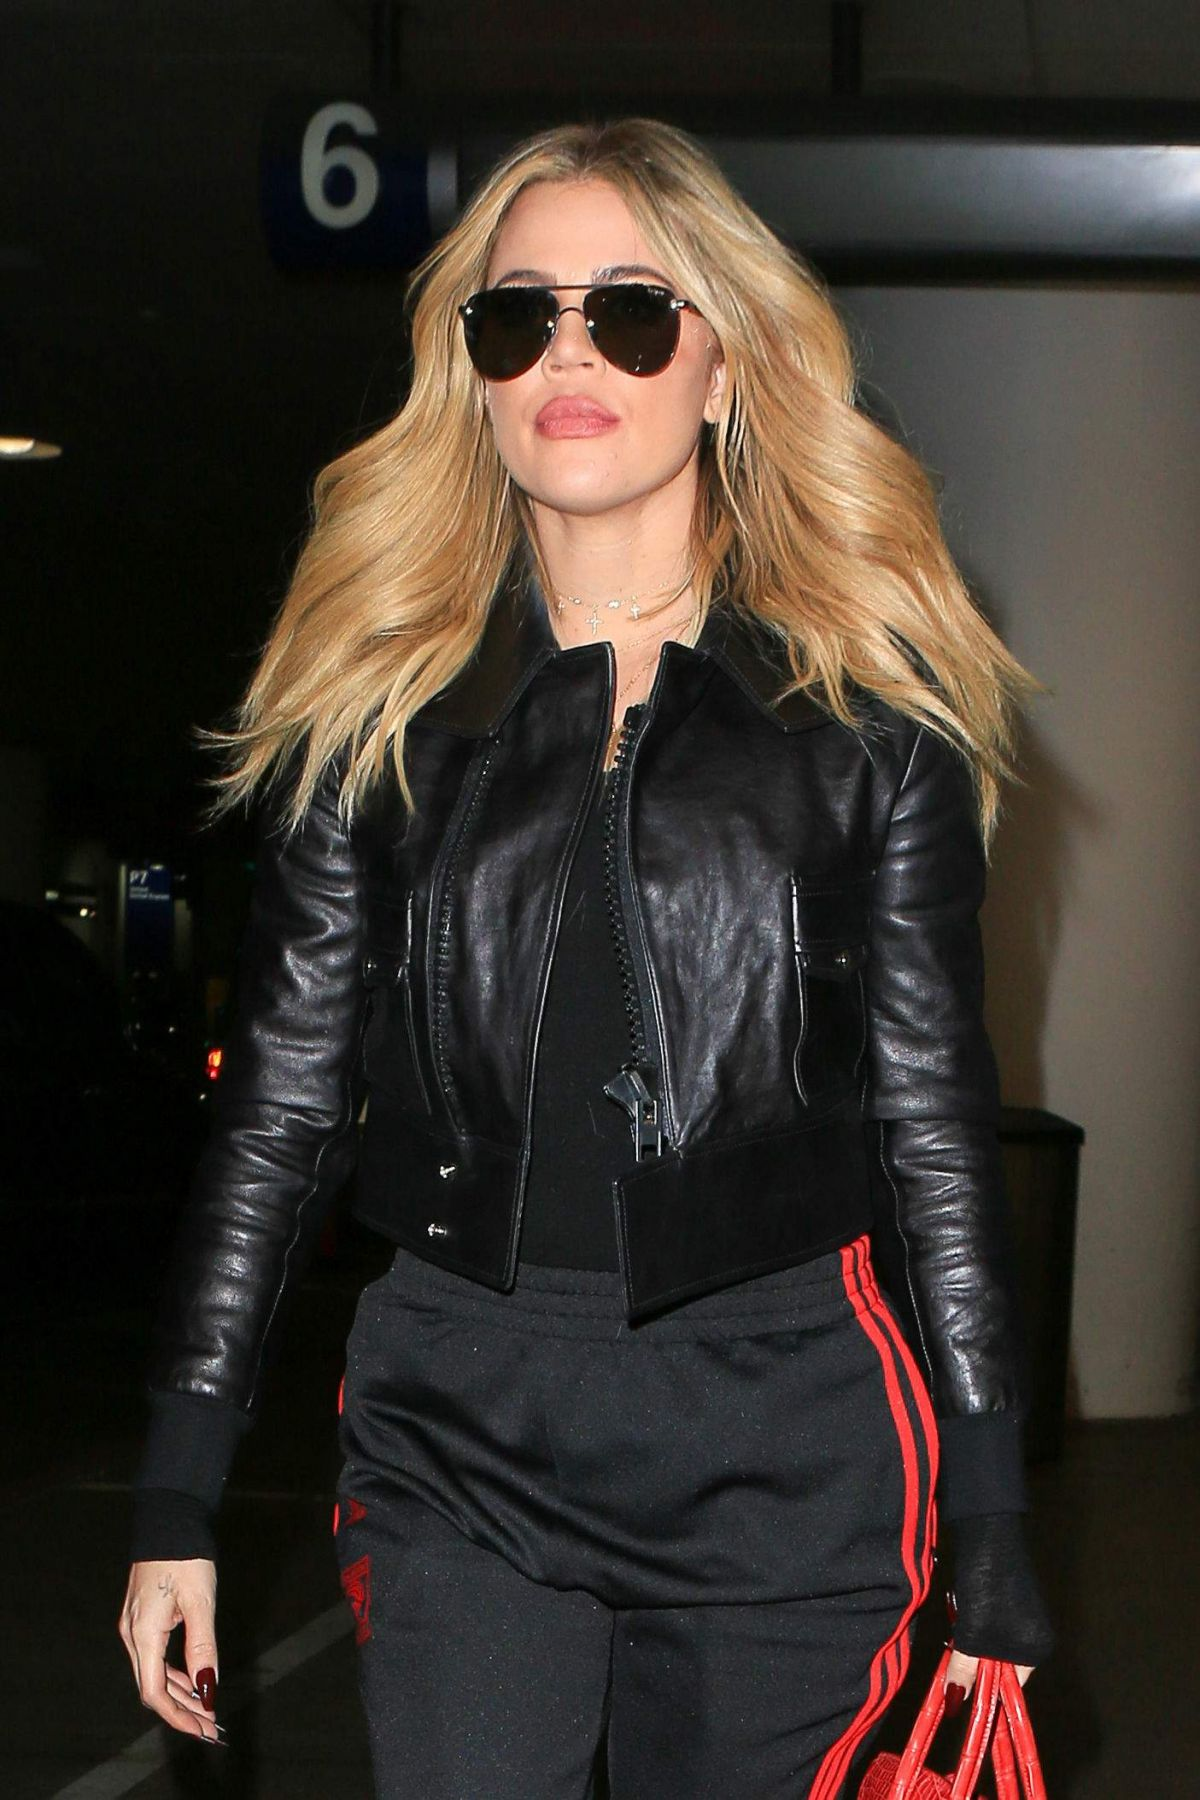 KHLOE KARDASHIAN at LAX Airport in Los Angeles 11/17/2016